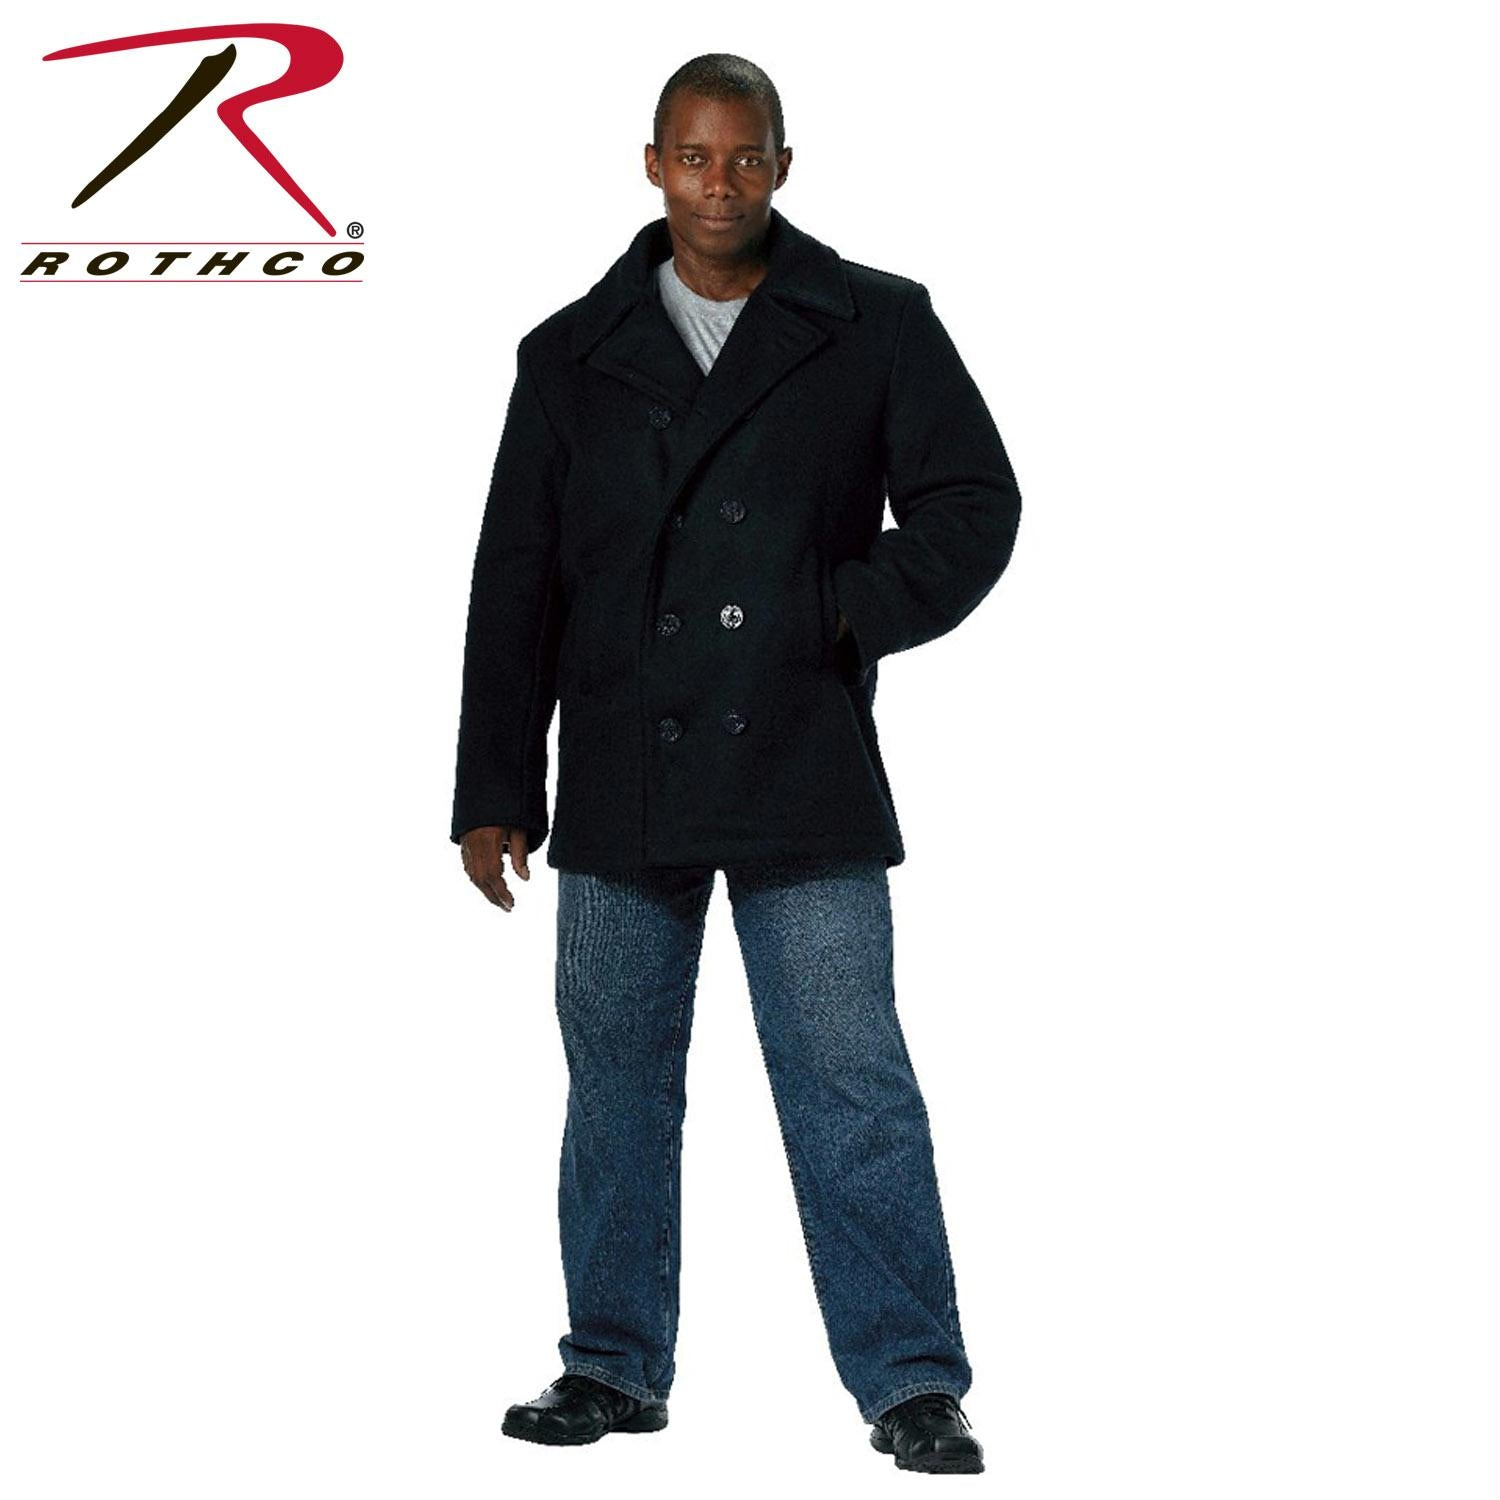 Rothco US Navy Type Pea Coat - Navy Blue / S